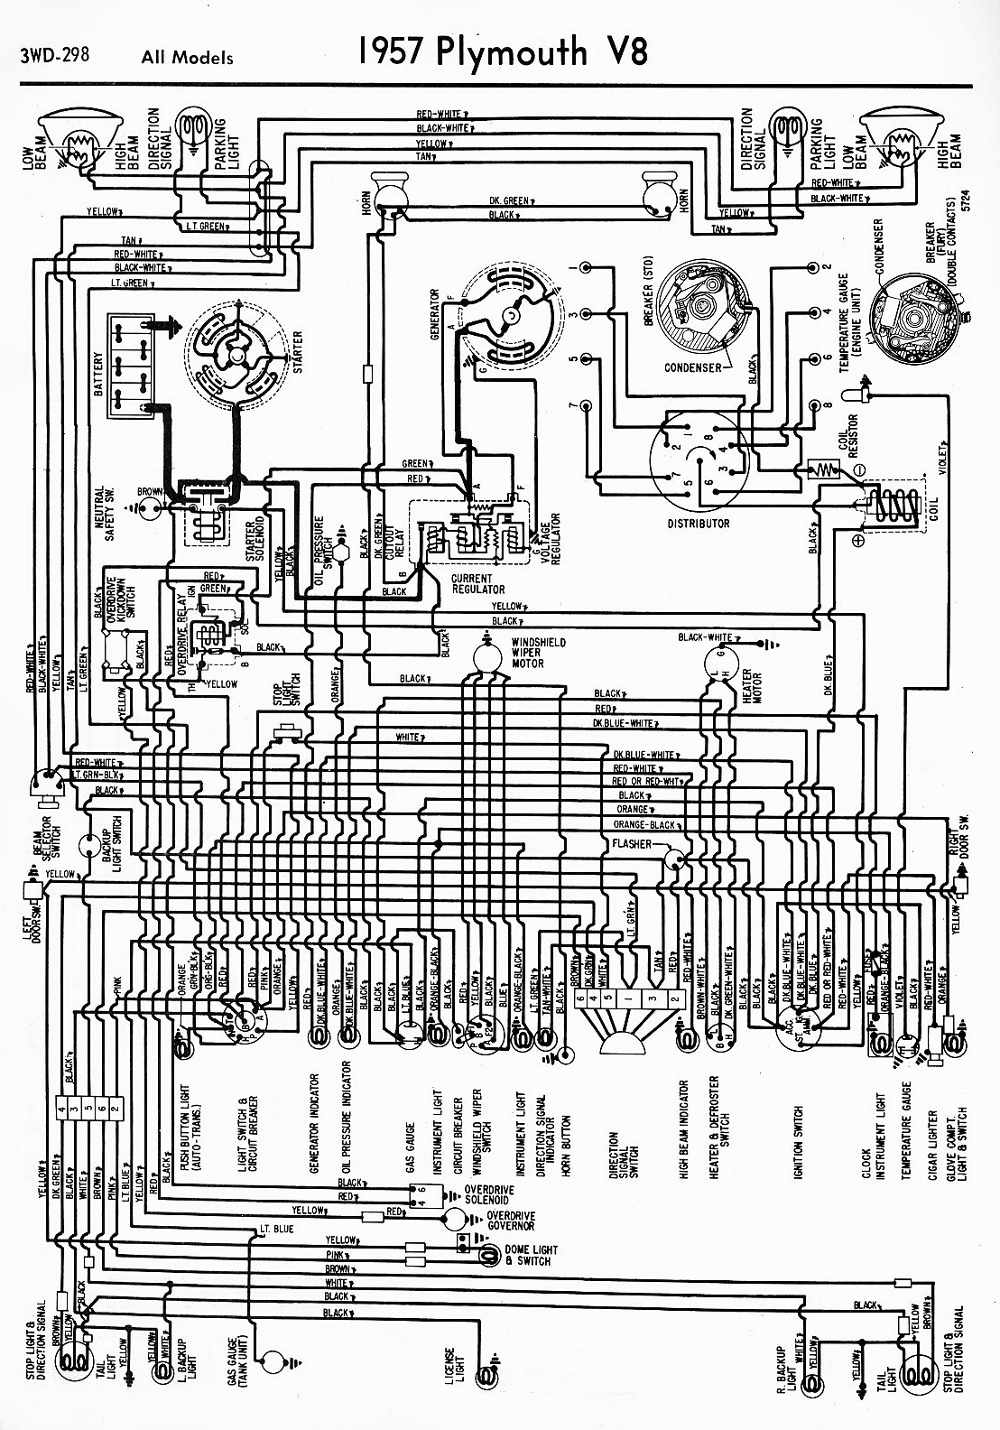 Plymouth Wiring Diagrams Electrical Diagram Schematics 1952 Schematic Car Manuals Pdf Fault Codes Sundance Hatchback